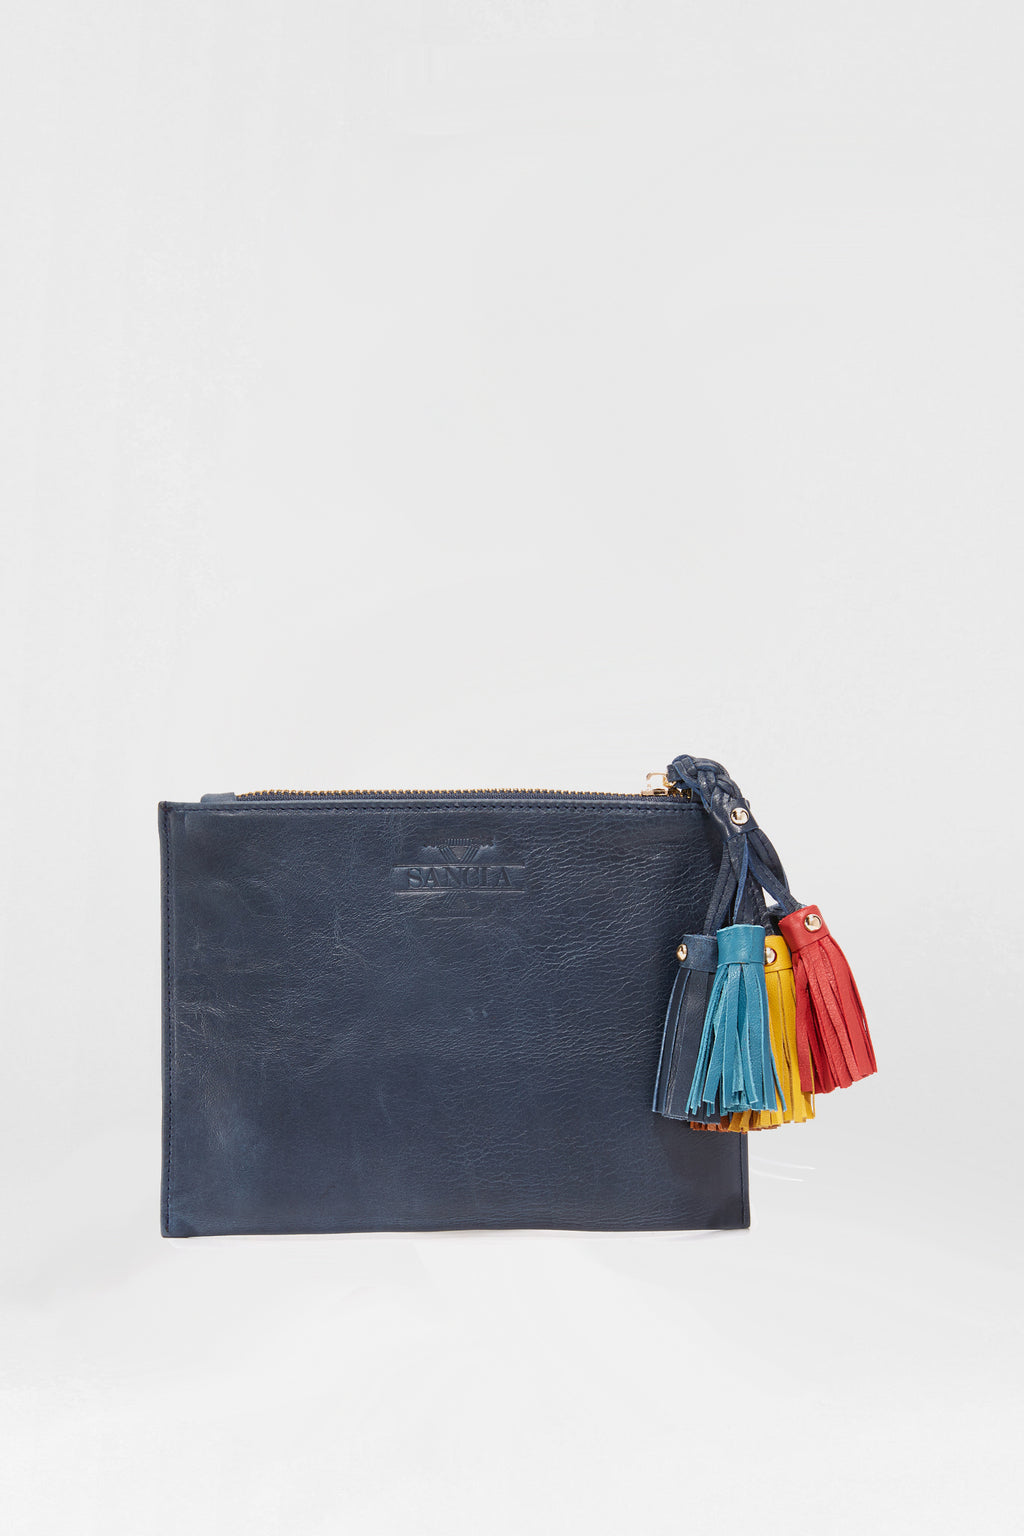 Buy Daydream Clutch from SANCIA at PAYA boutique